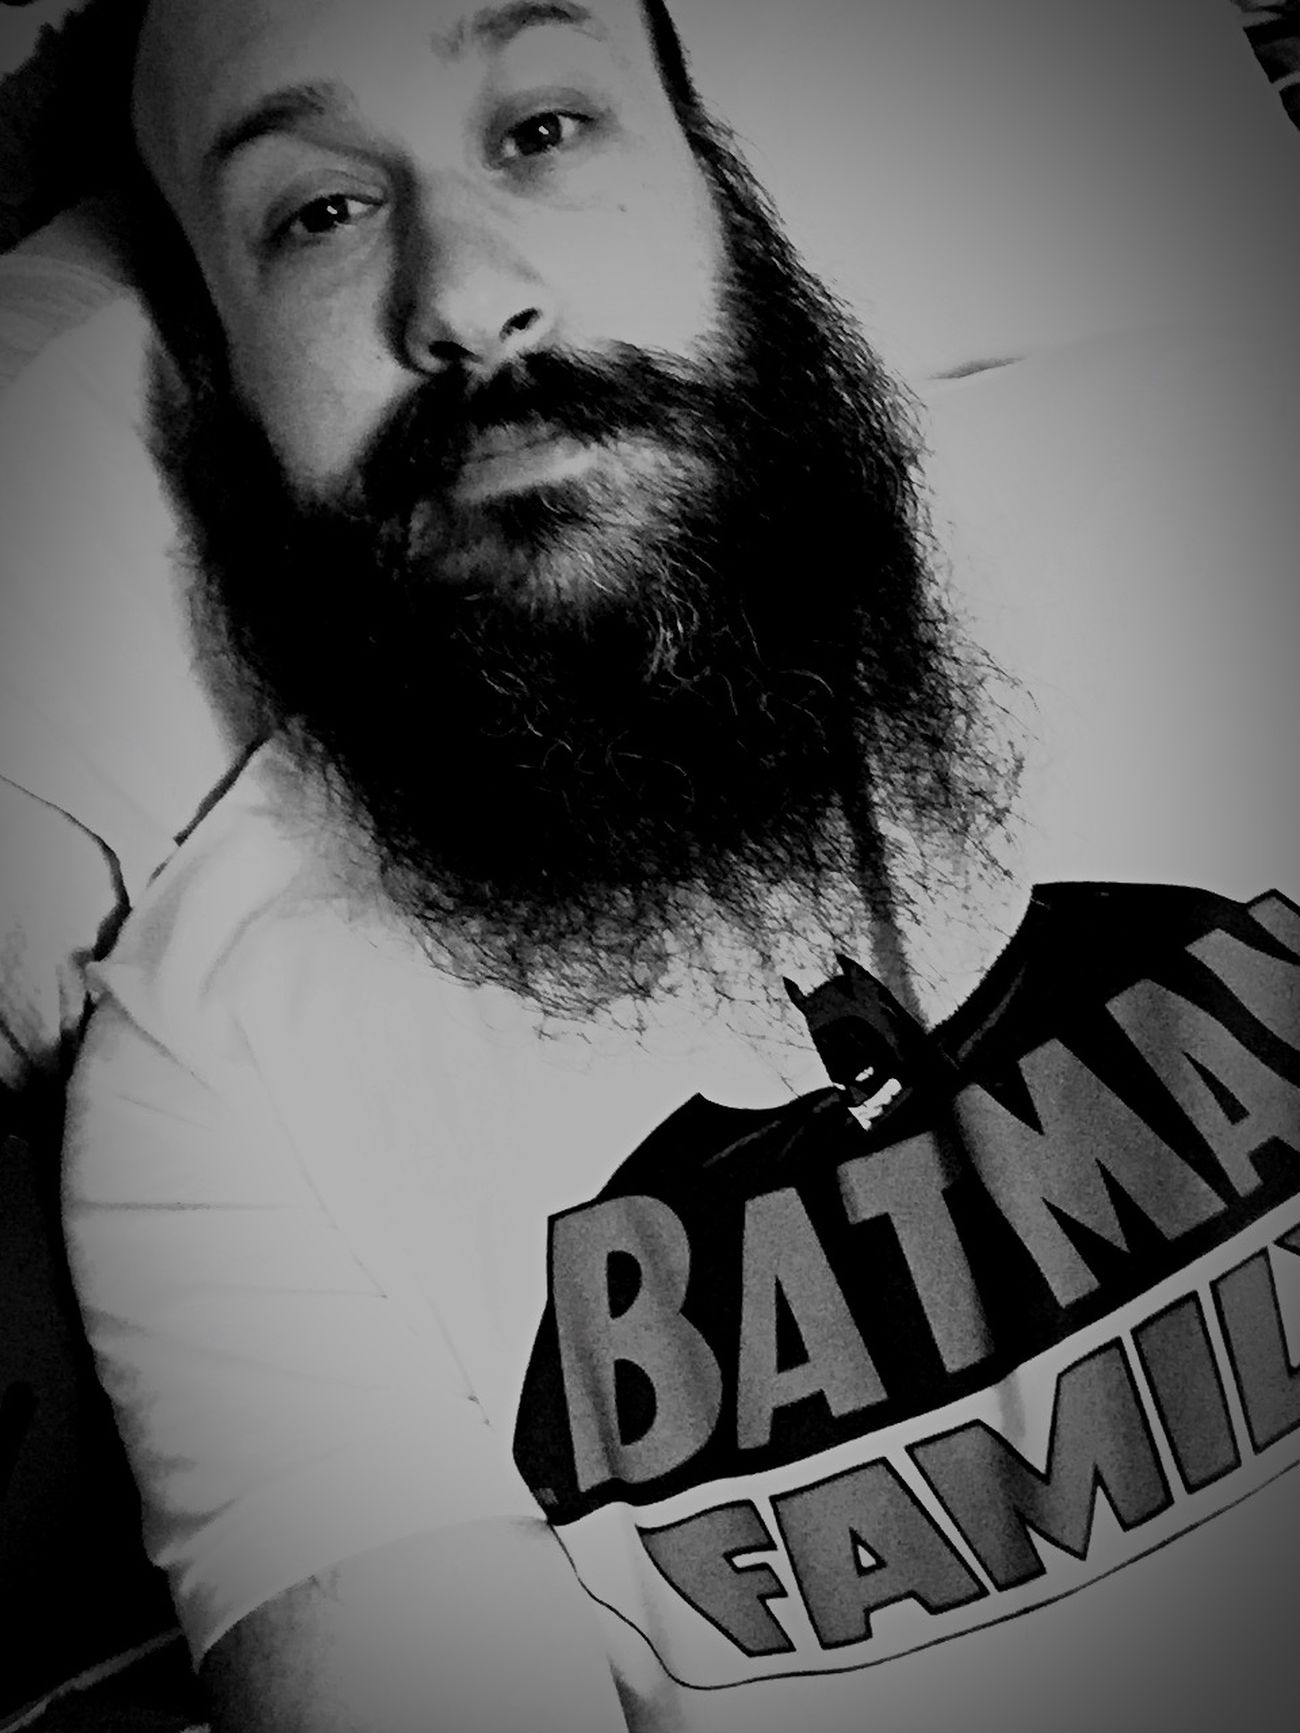 It's Me Beard Hey! Look At My Boring Life. Black & White